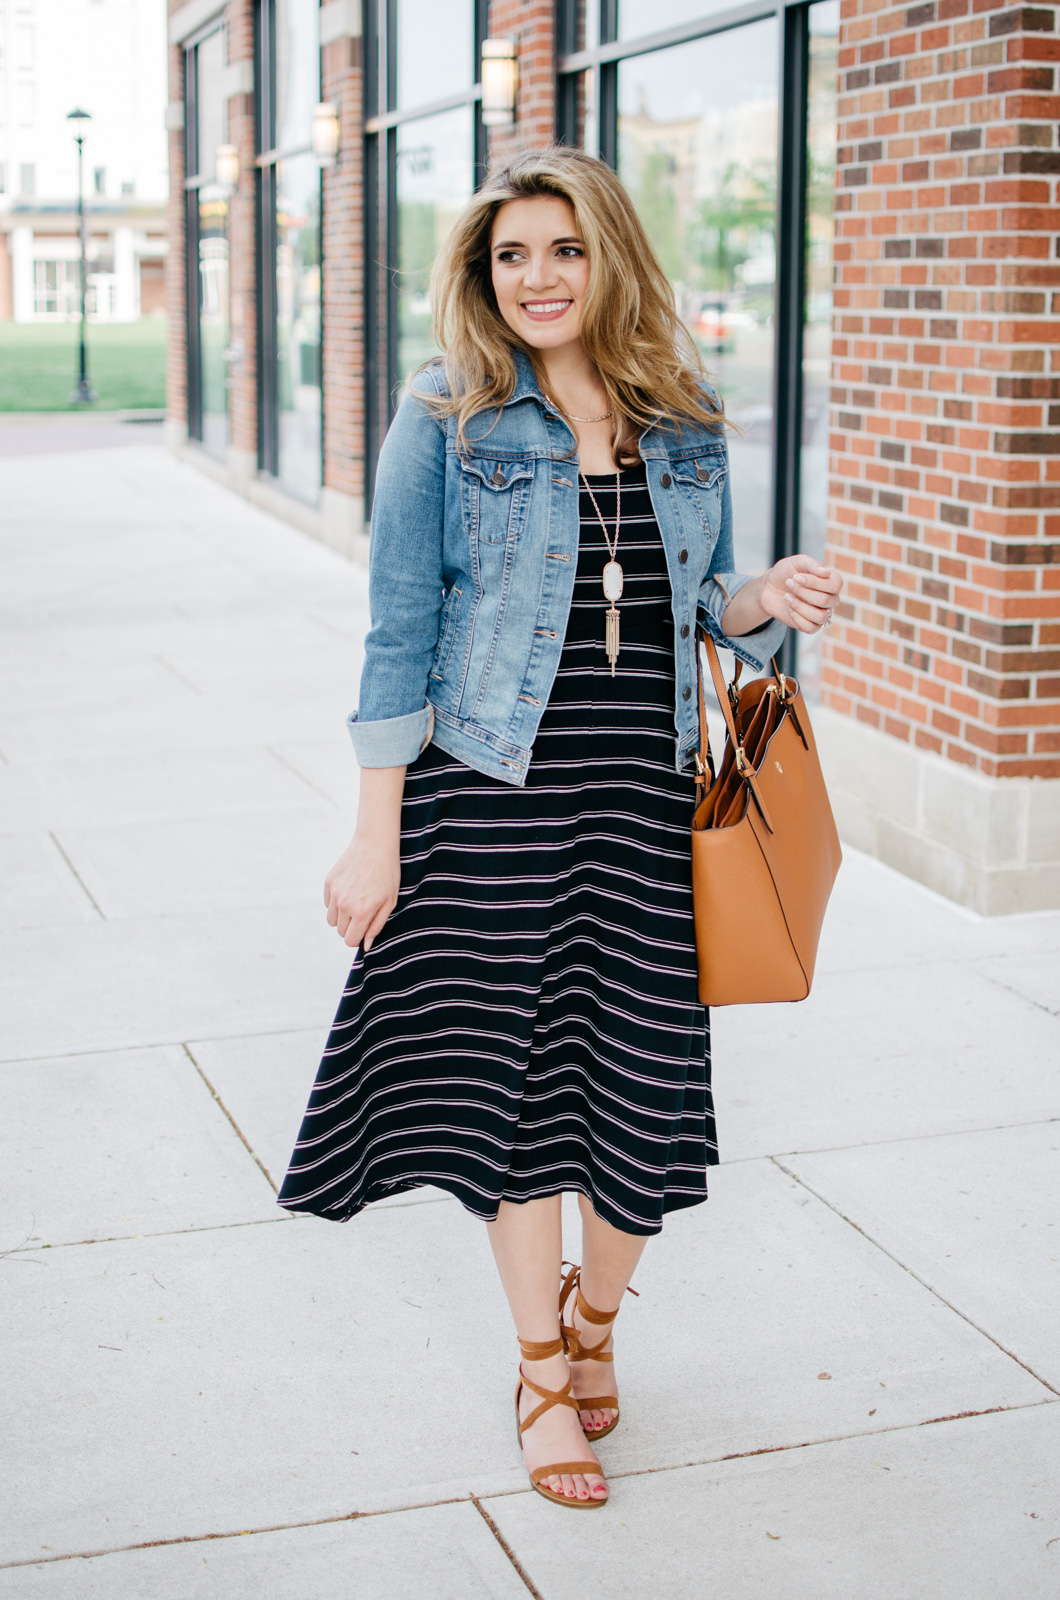 spring style - fashionable spring outfits - stripe midi dress and denim jacket | For more Spring outfit ideas, head to bylaurenm.com!